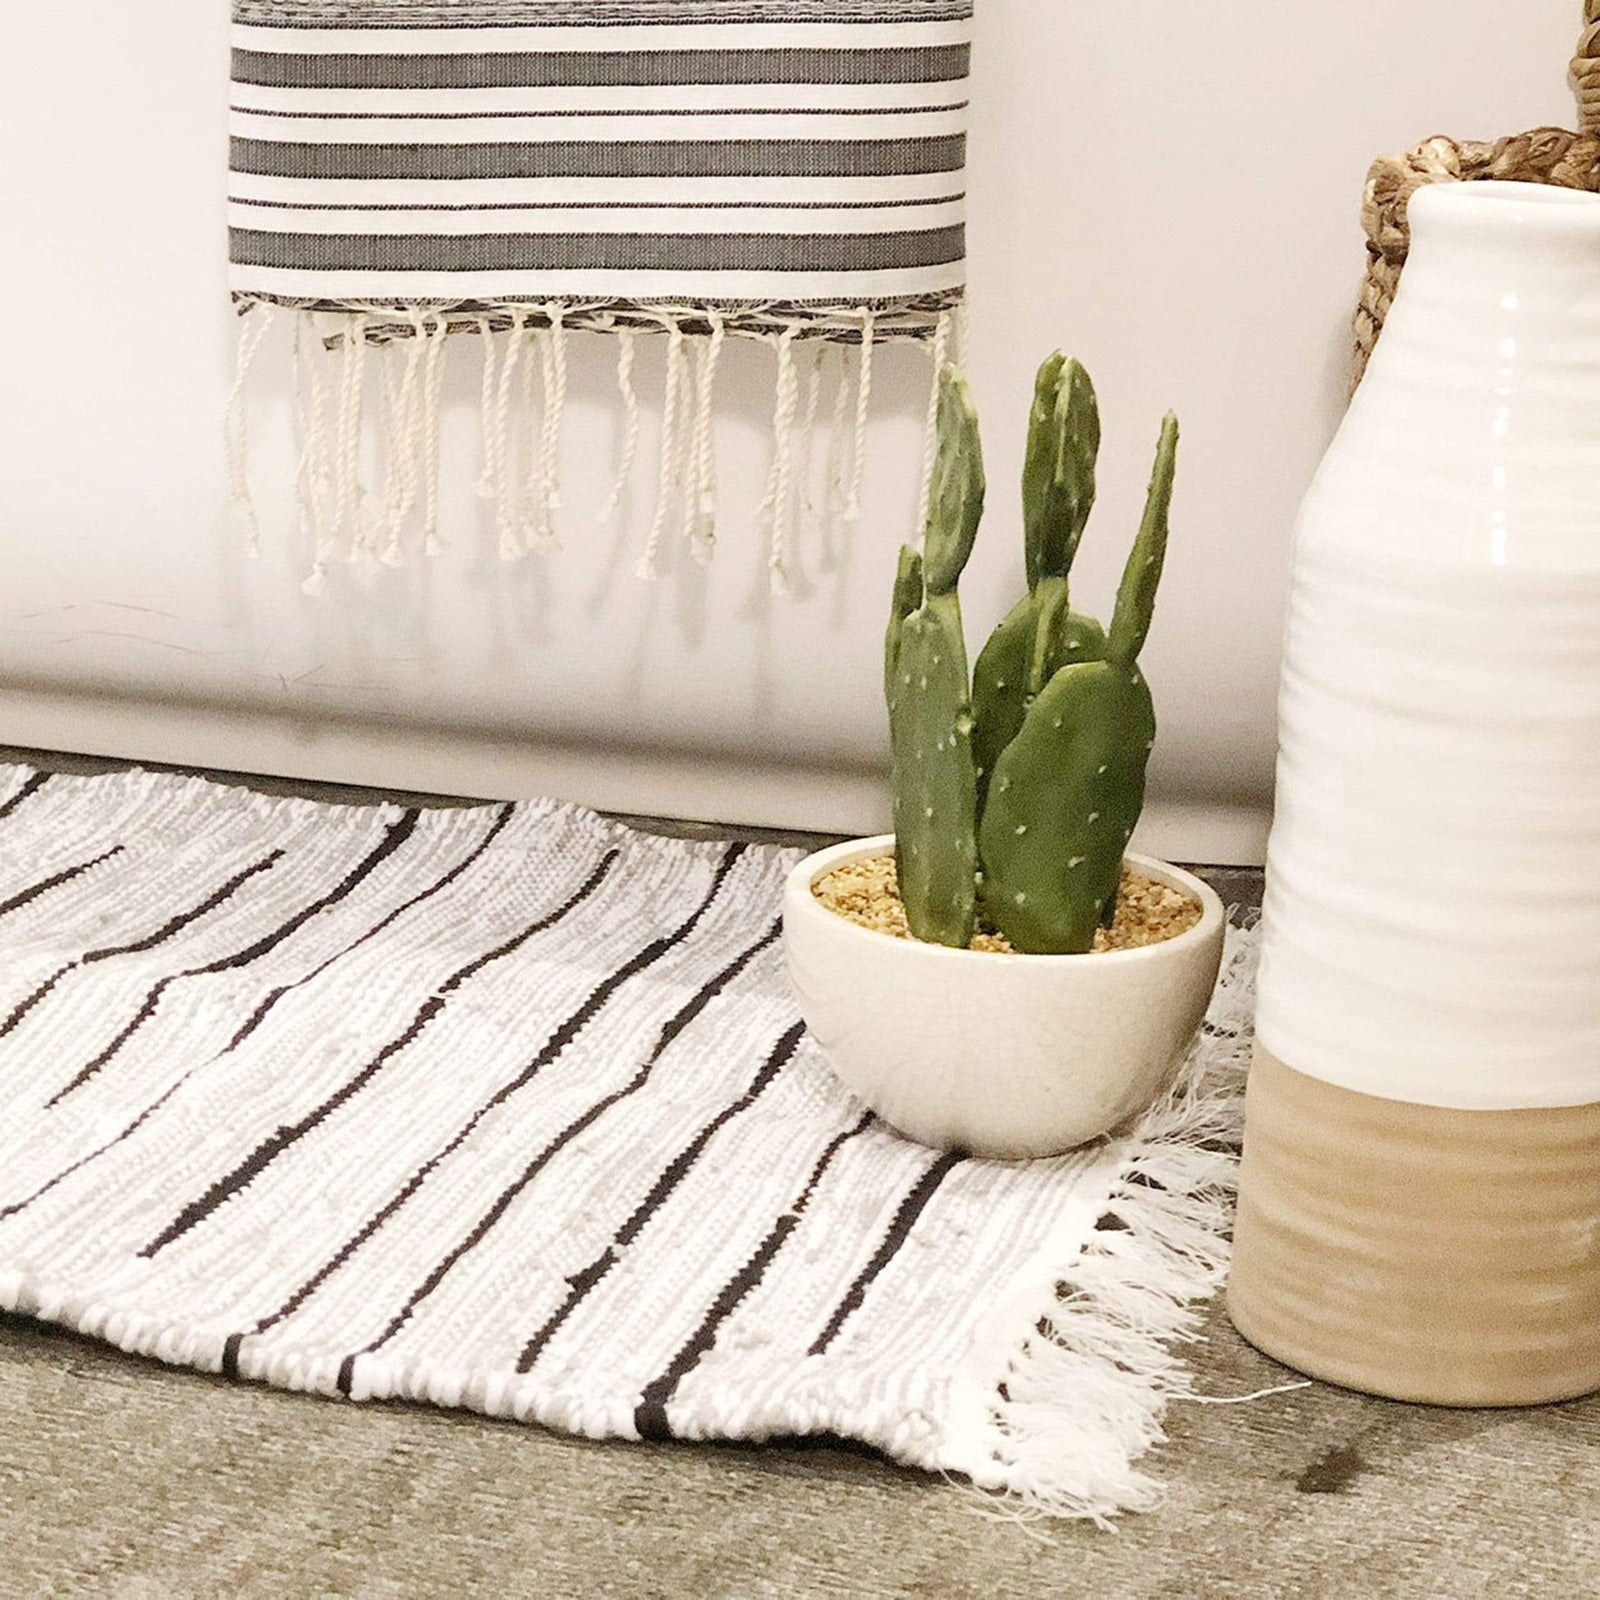 Scents and Feel Bath Cotton Chine Stripes Bathrug